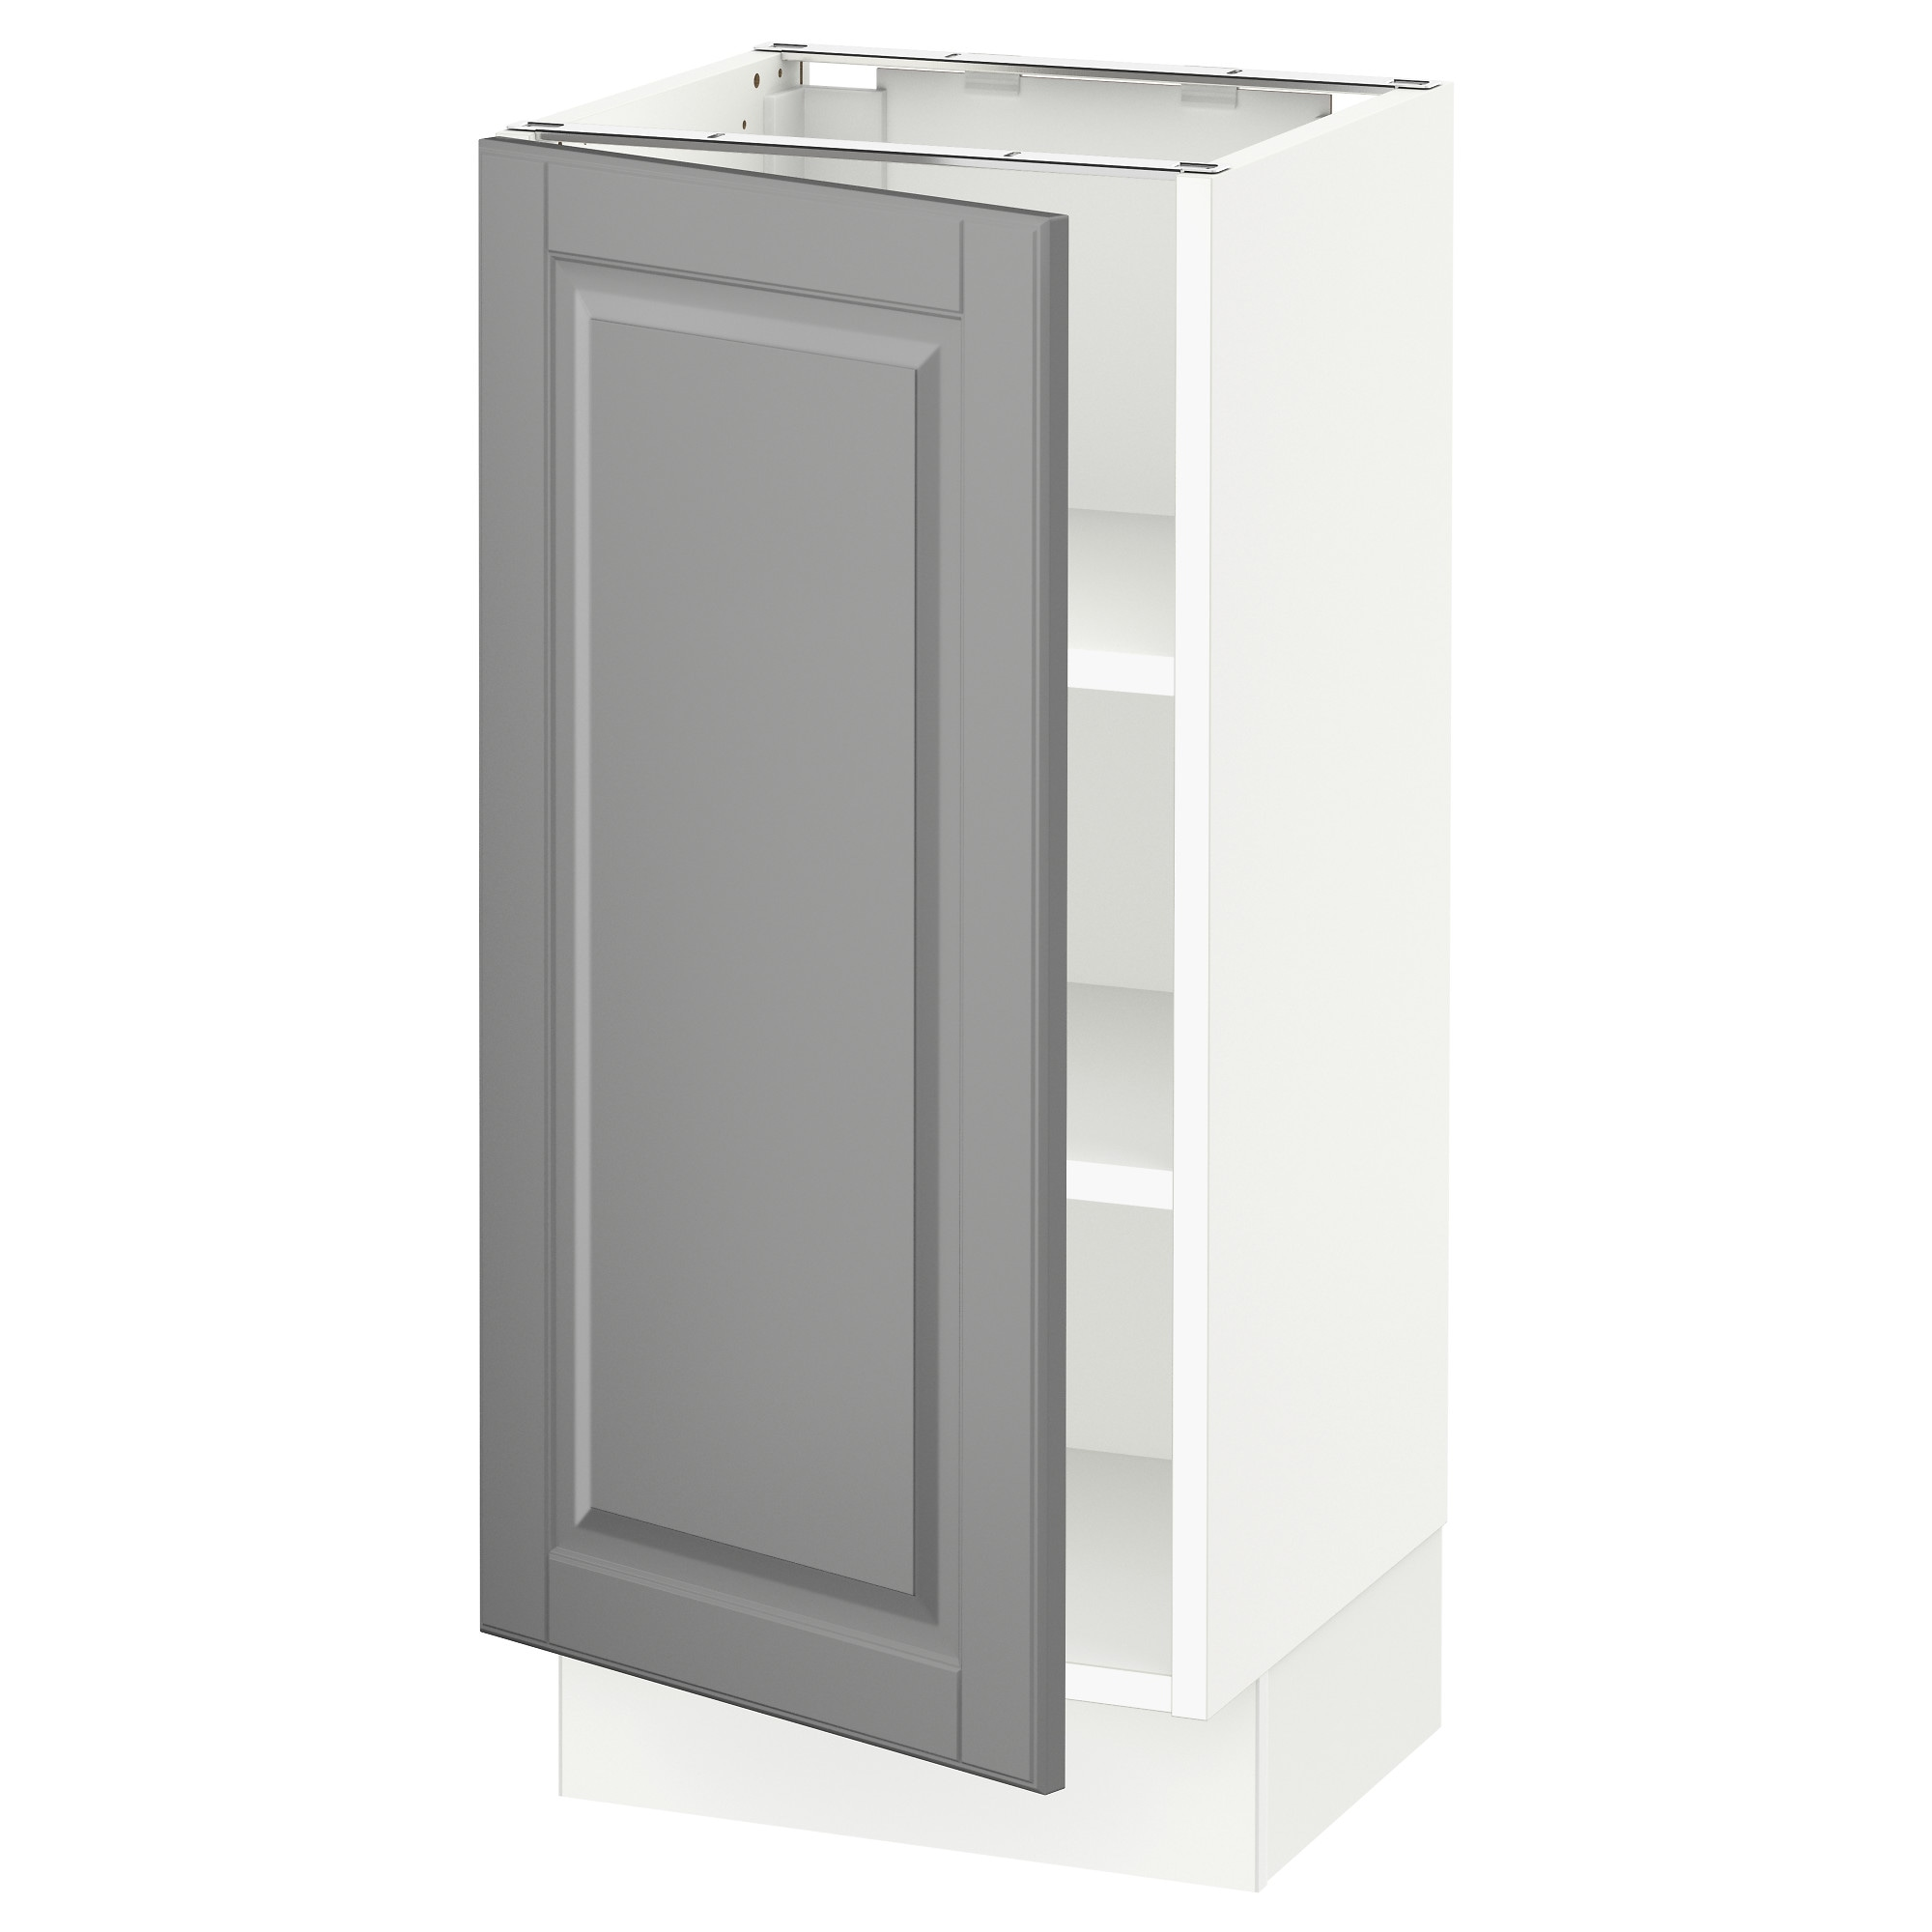 Replacement kitchen cabinet doors vancouver bc - Sektion Base Cabinet With Shelves White Bodbyn Gray Width 15 System